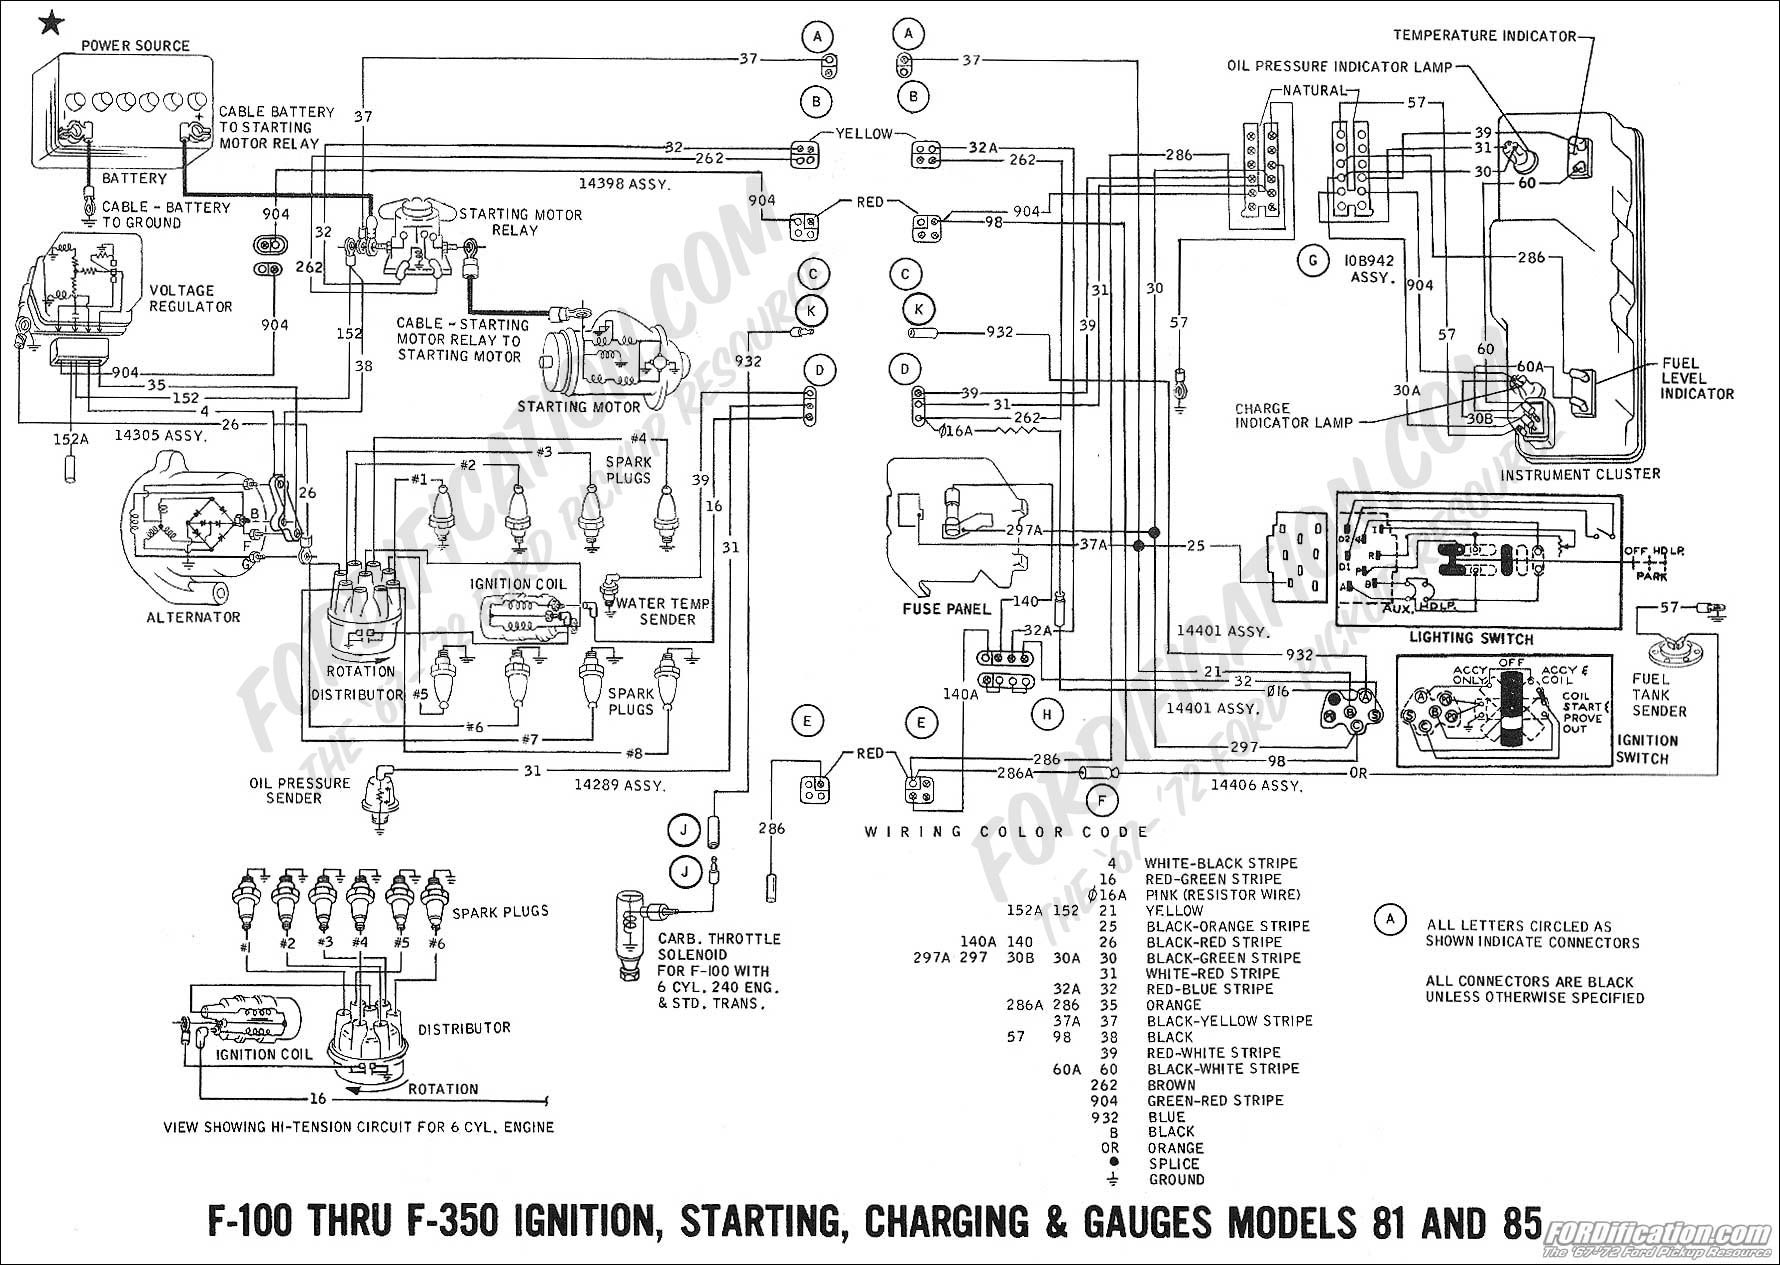 Charging System Wiring Diagram ford Charging System Wiring Diagram ...